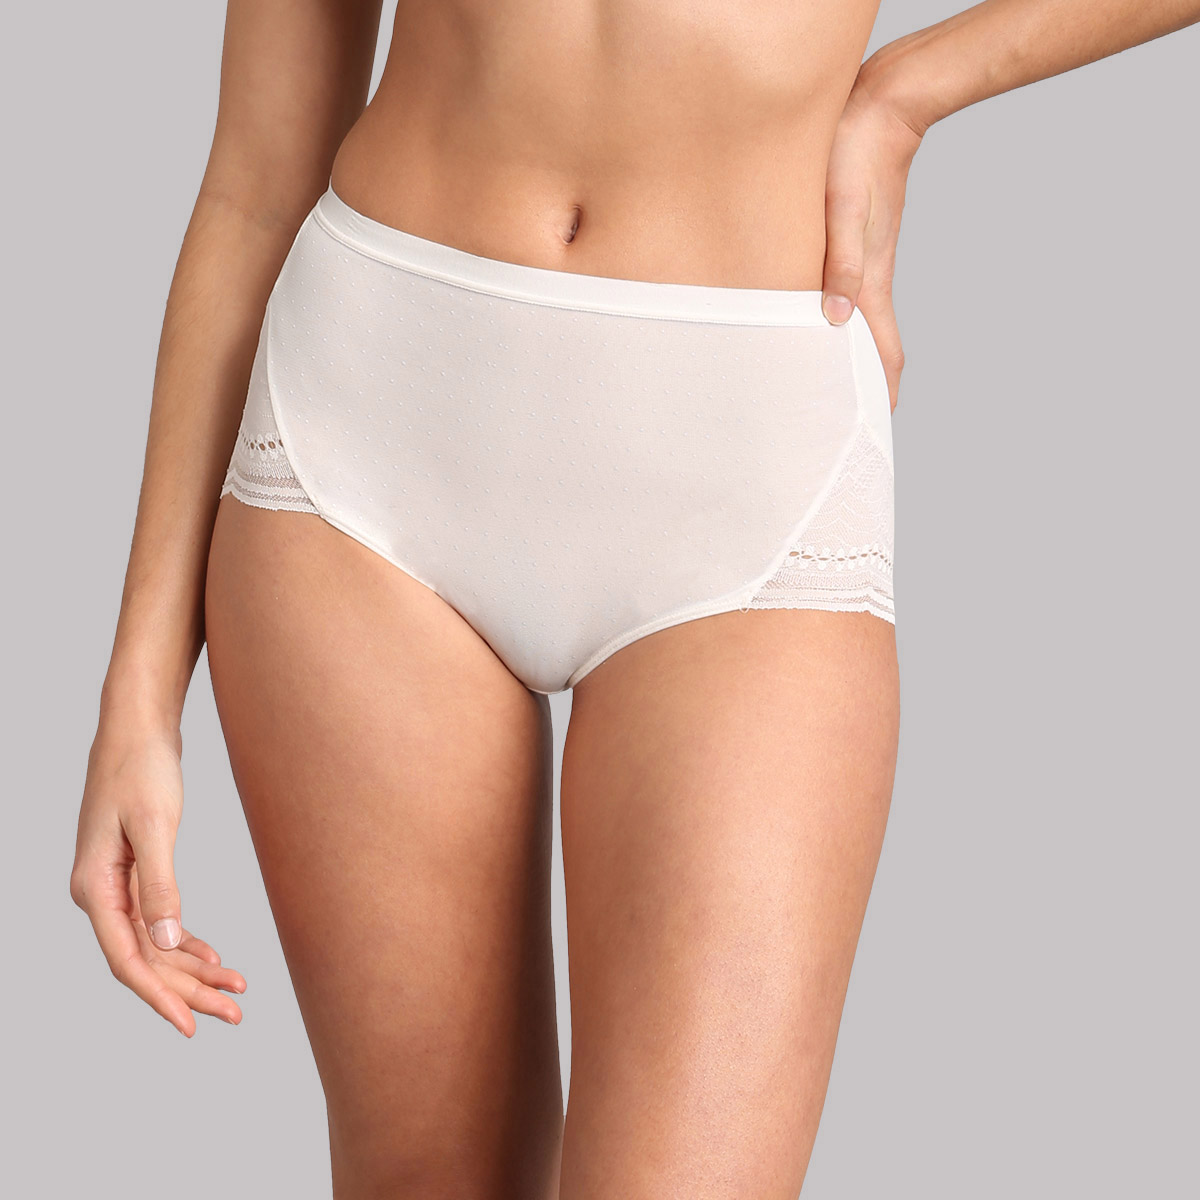 High-rise knickers in ivory - Secret Comfort, , PLAYTEX